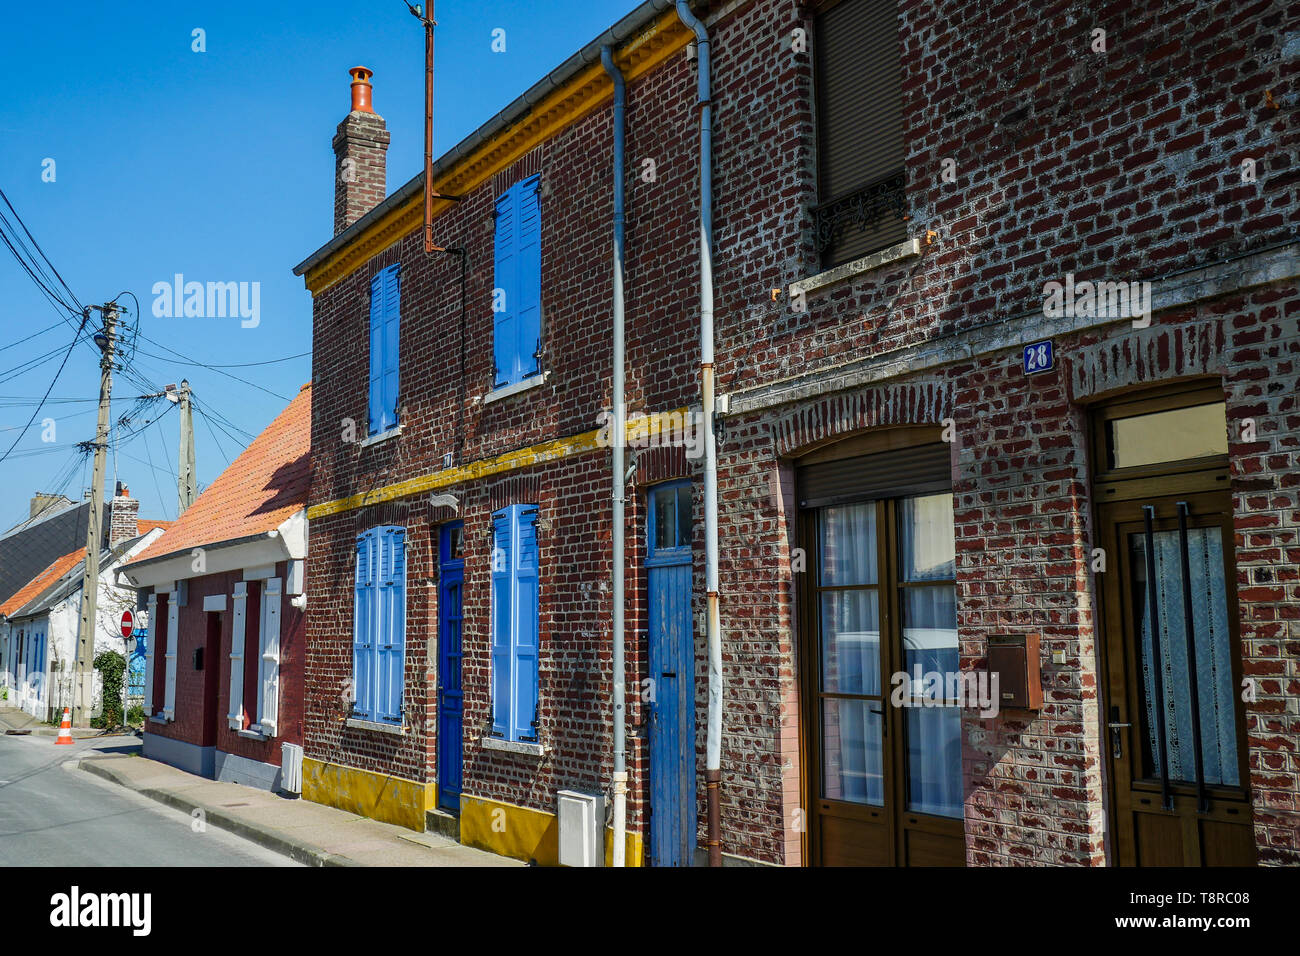 Fishermen's houses, Le Crotois, Bay of Somme, Hauts-de-France, France Stock Photo